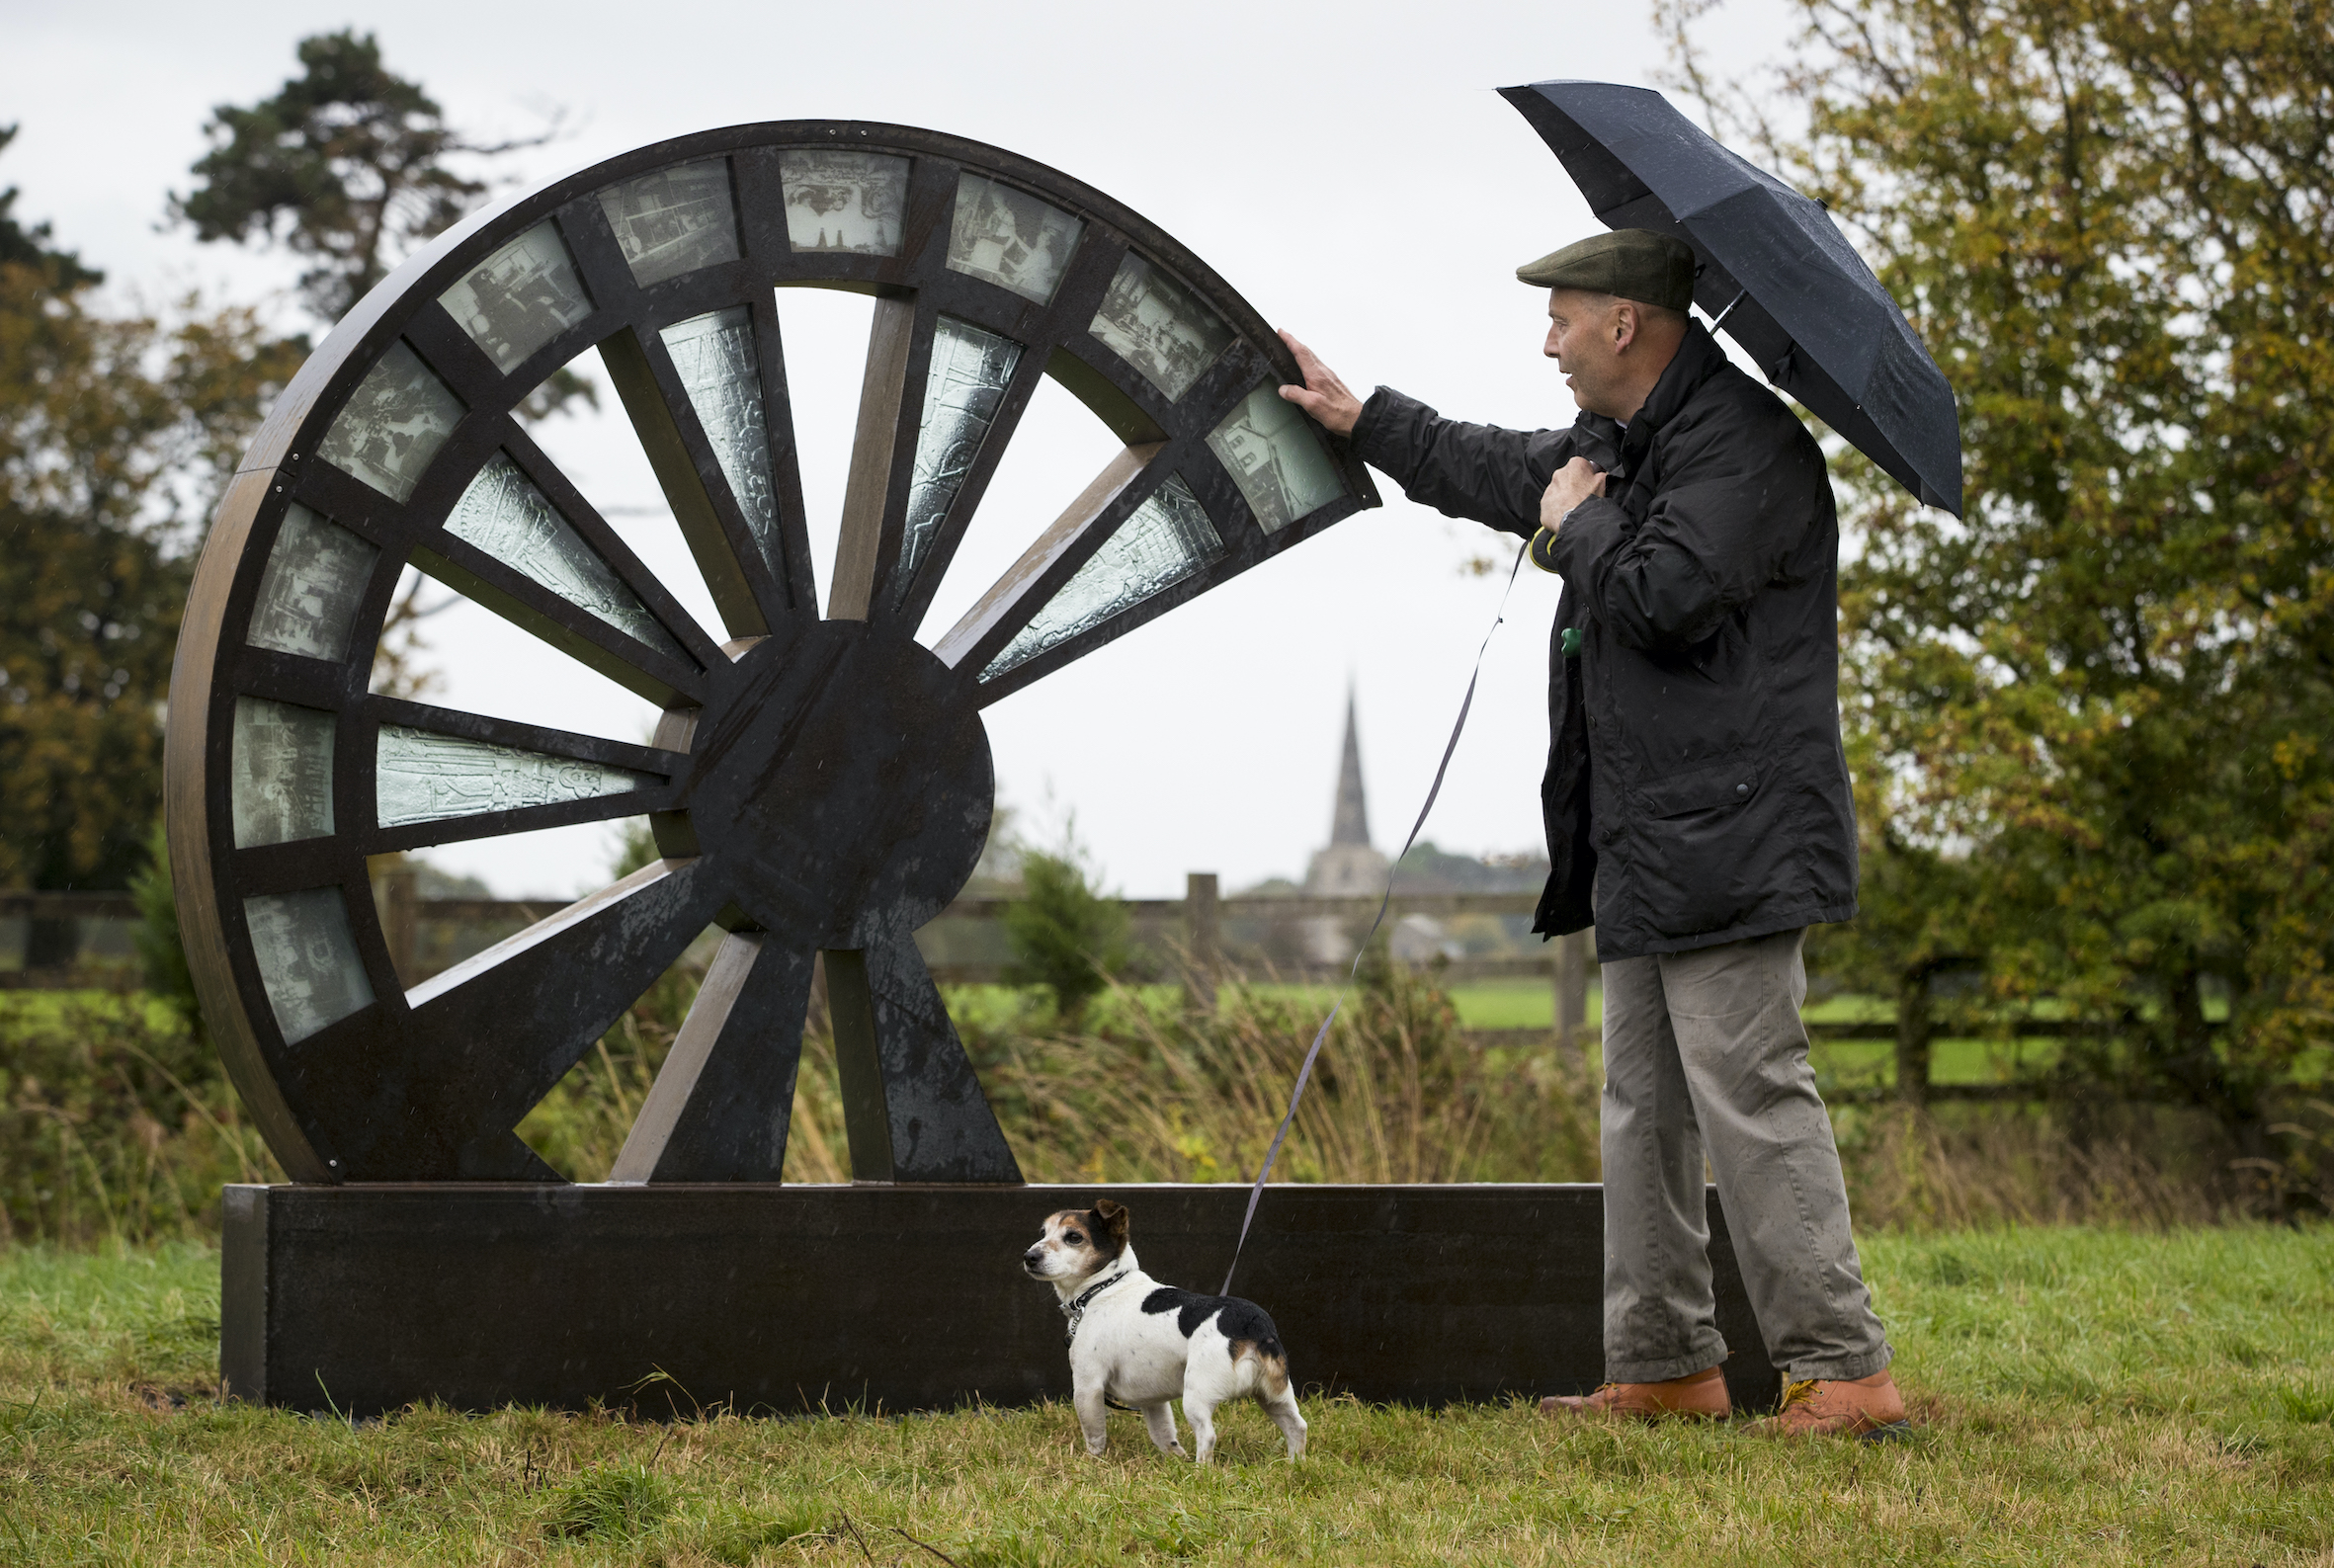 A man and his dog stand next to a wheel shaped sculpture